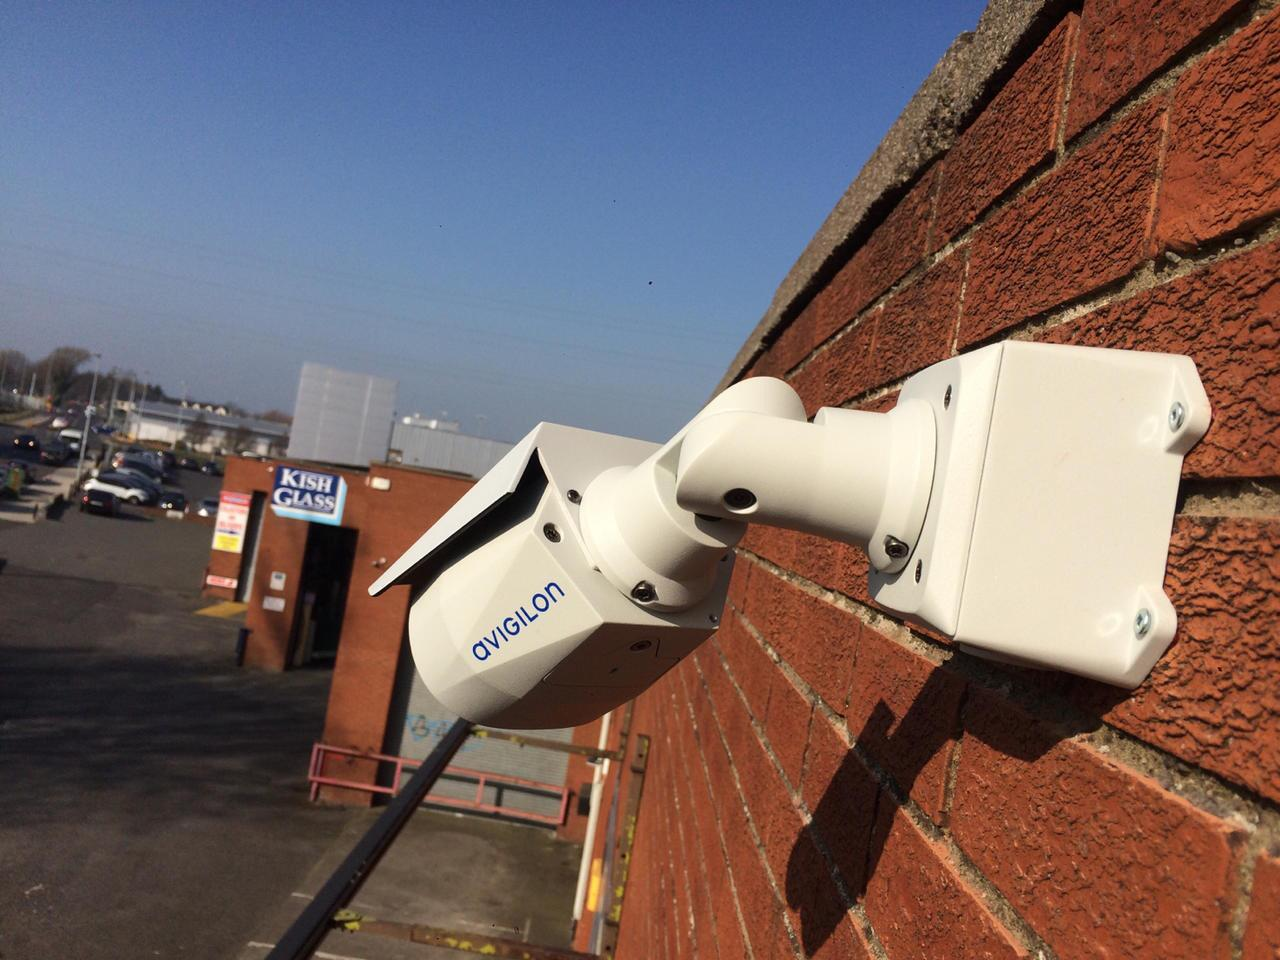 Usee.ie high definition CCTV camera installed in South Dublin